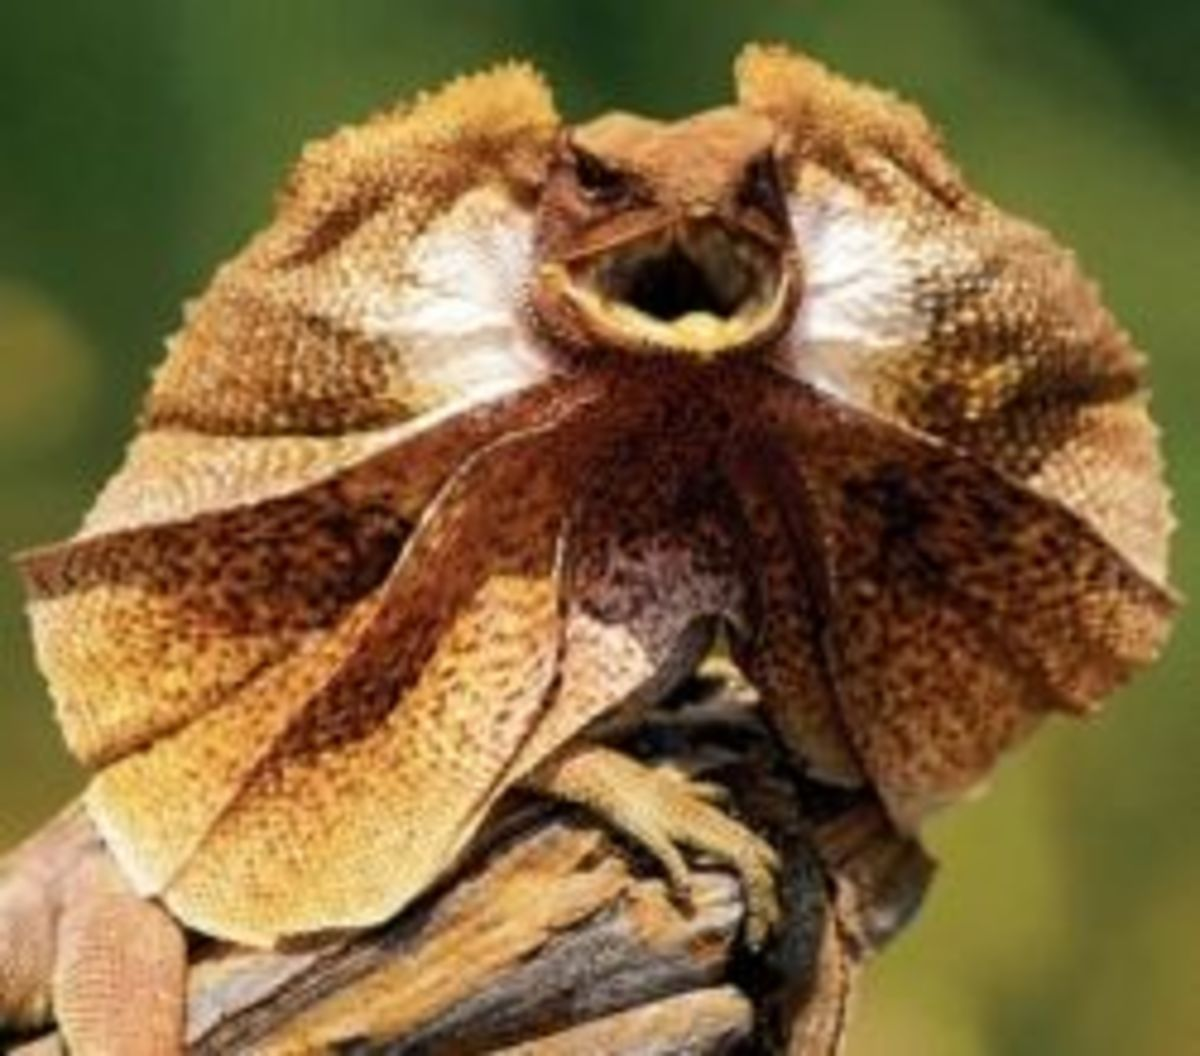 This frilled lizard strikes fear into his enemies - just like you!